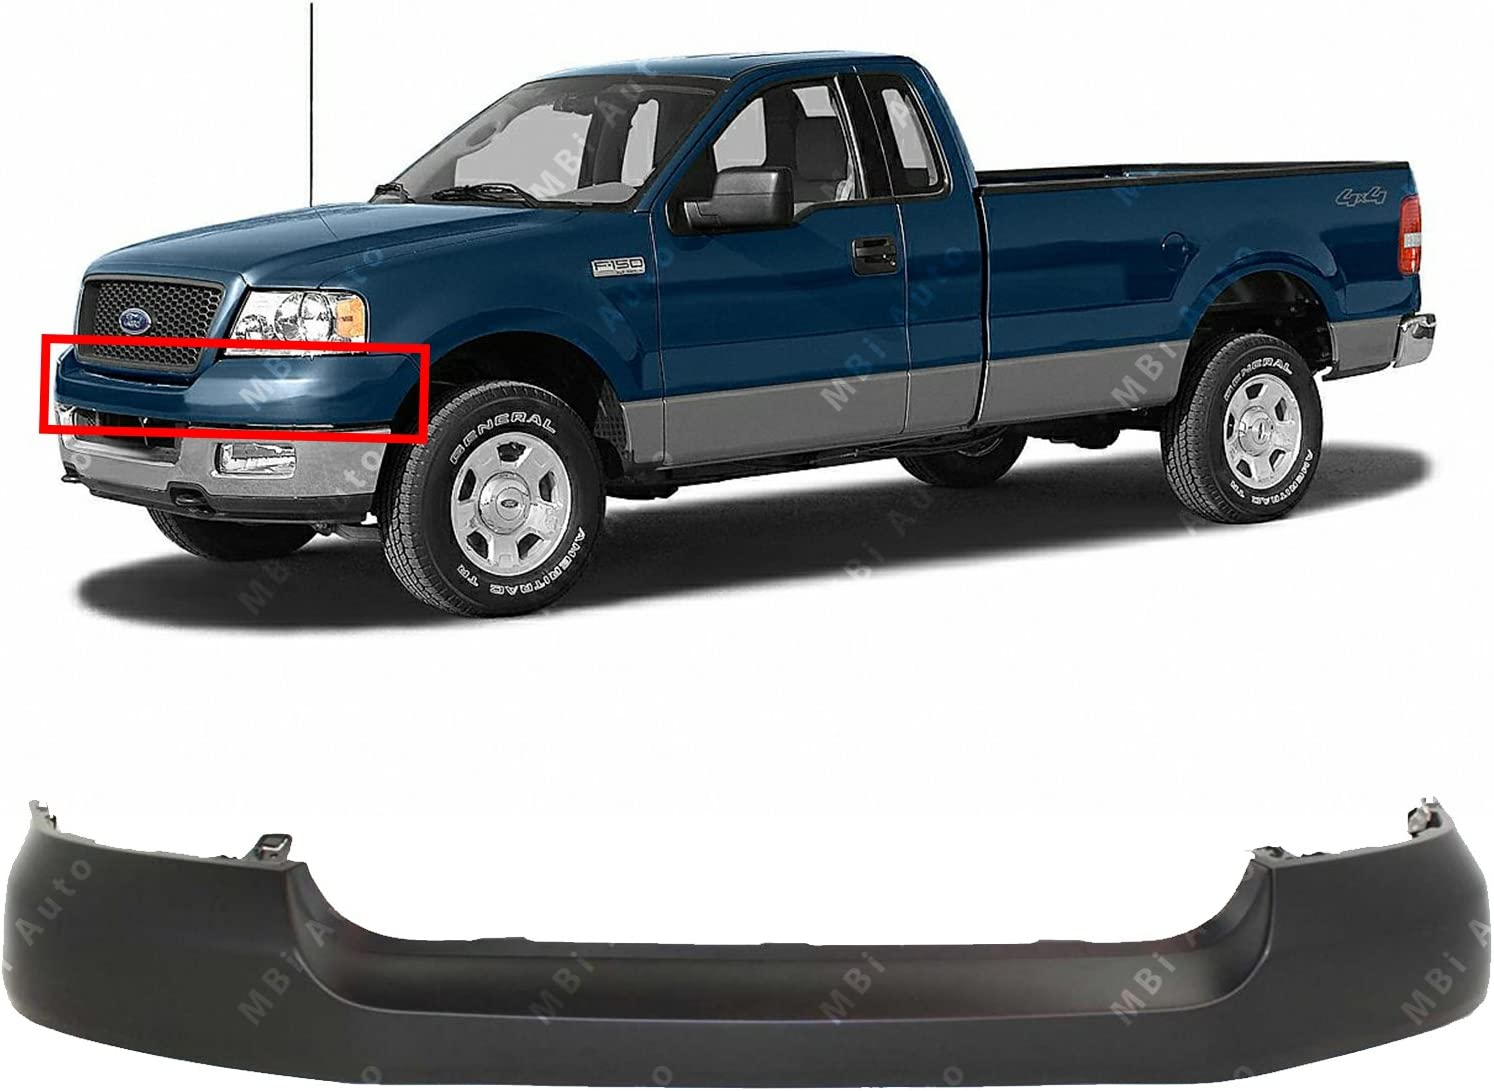 MBI AUTO - Primered, Front Bumper Upper Valance Cover Cap for 2006 2007 2008 Ford F150 Pickup 06-08, FO1000616